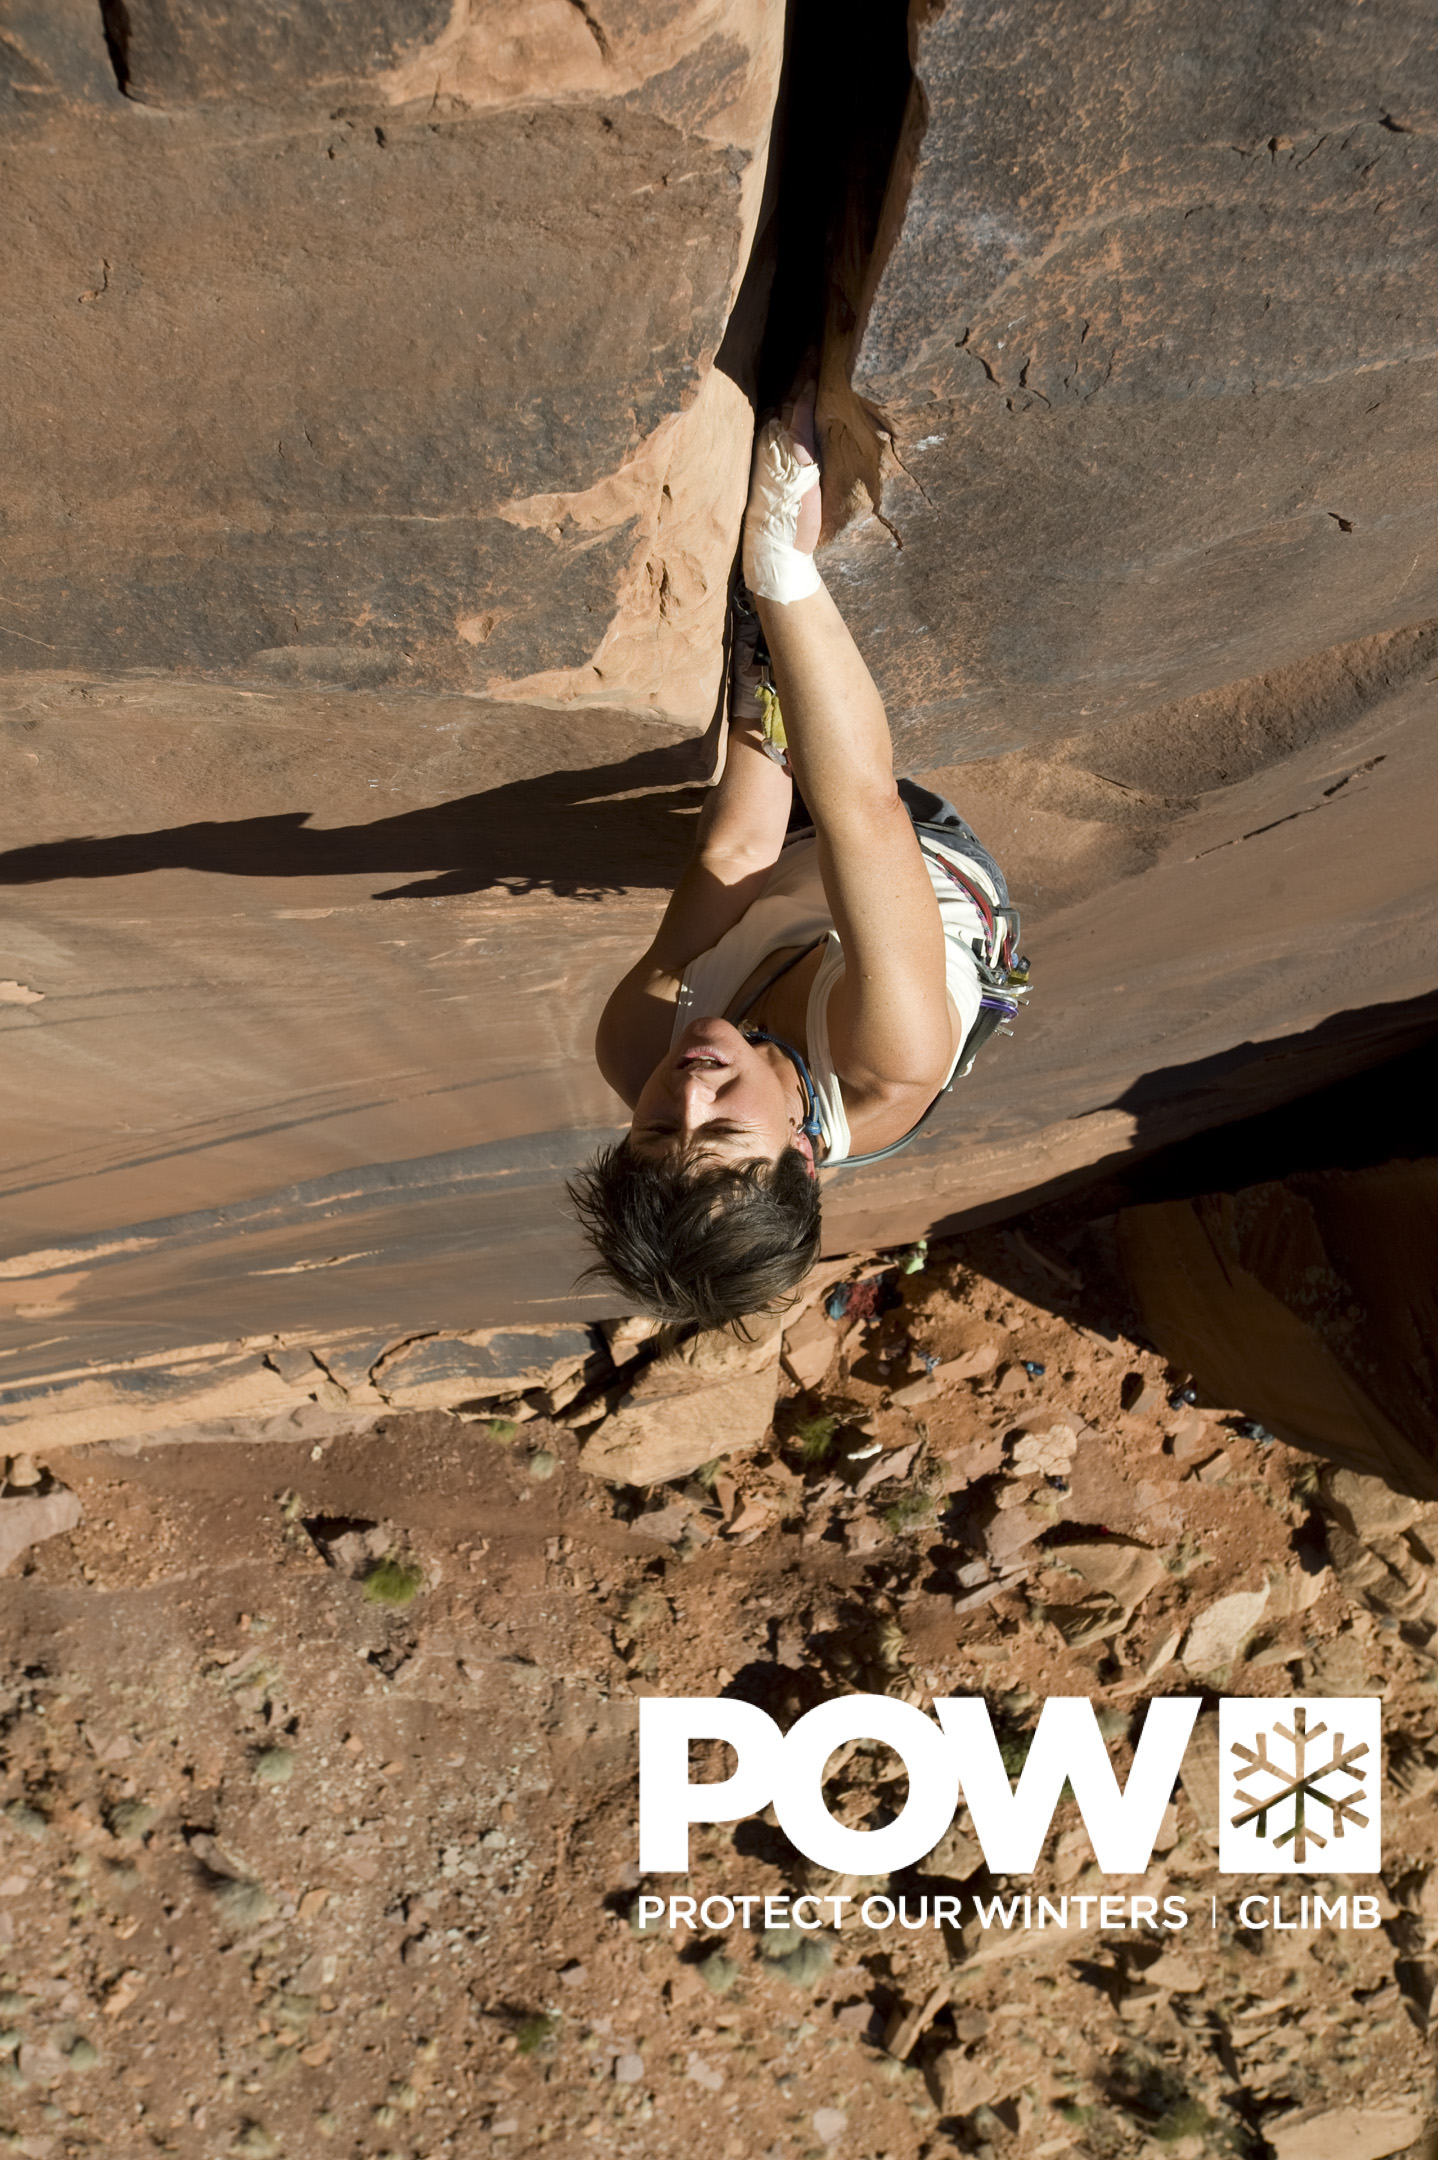 POW poster of Angela Hawse climbing a 5.10 crack climb in Indian Creek, utah